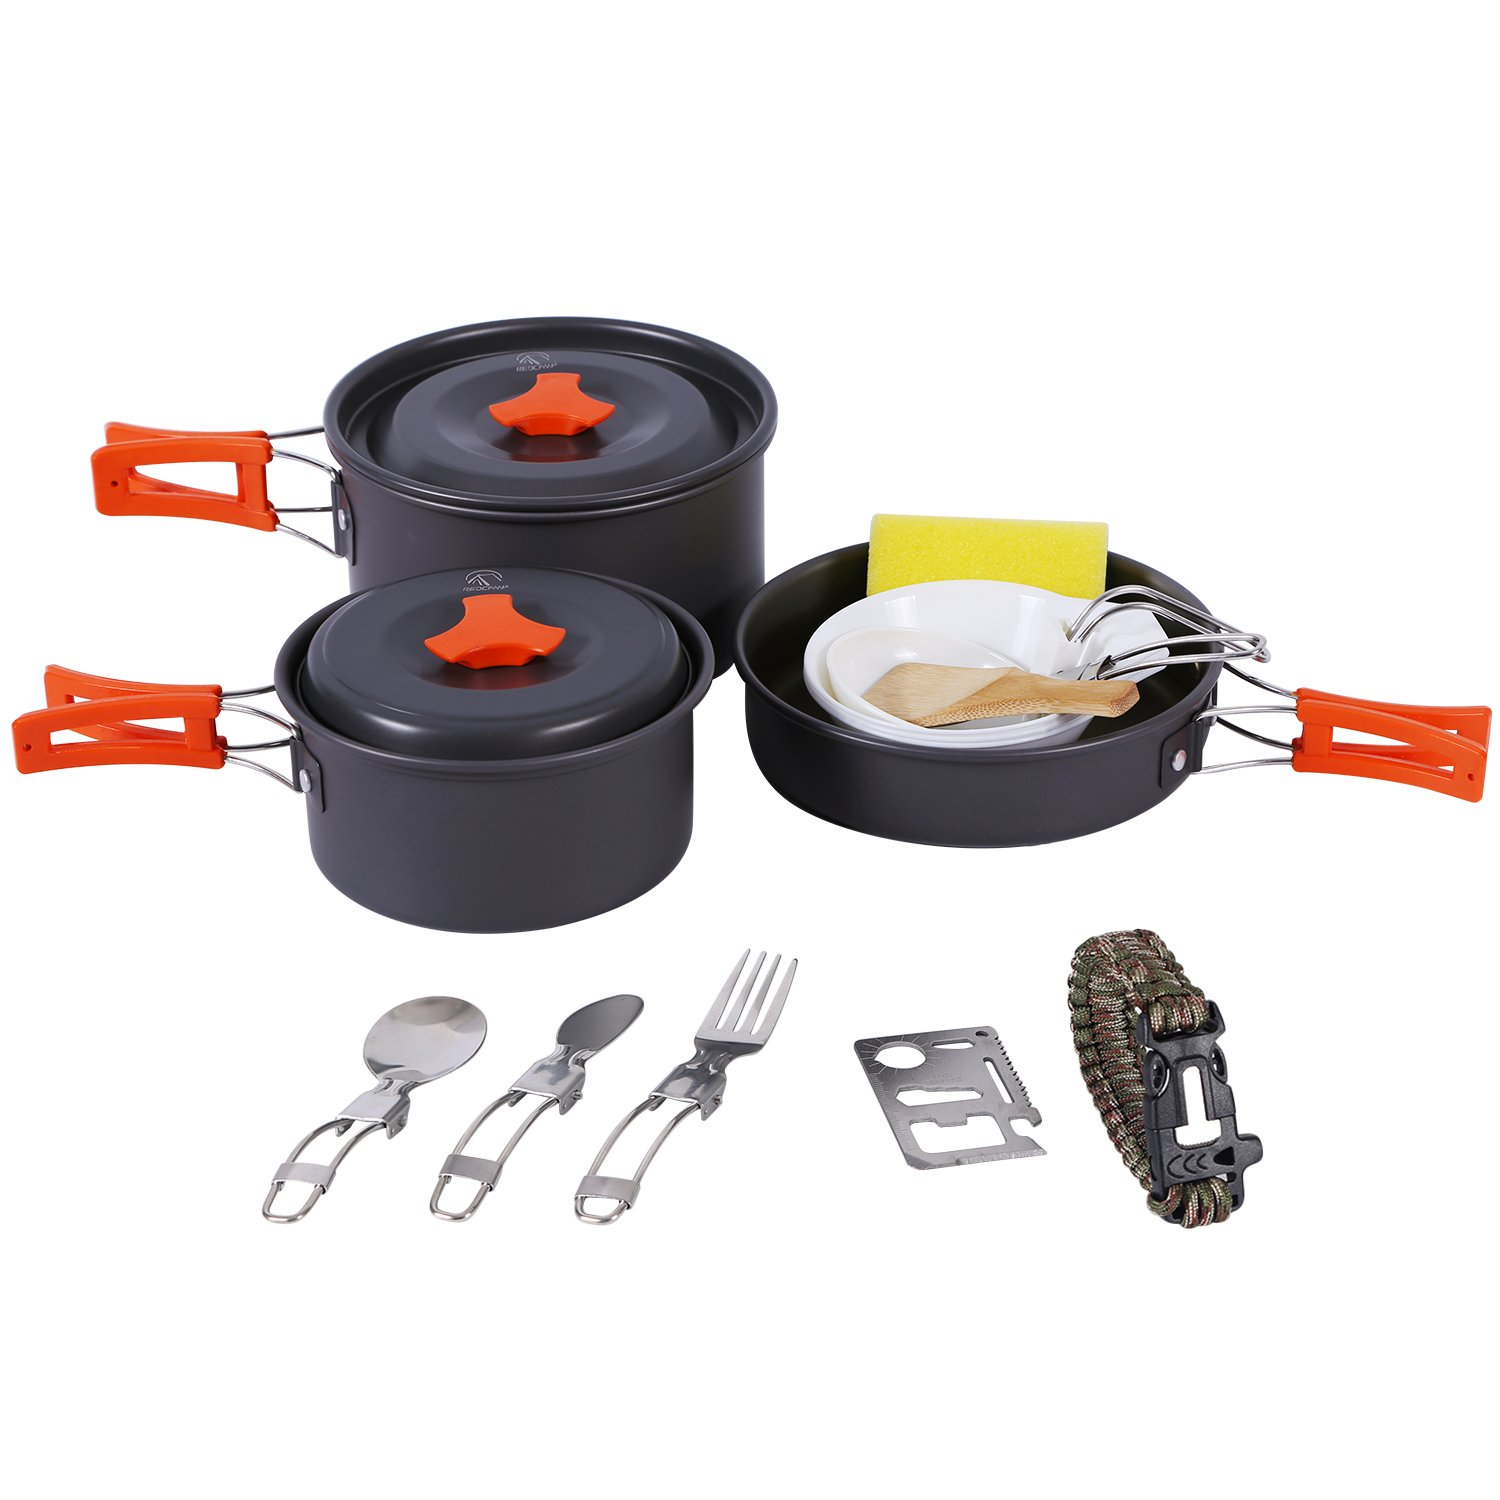 REDCAMP 18 PCS Camping Cookware Mess Kit, Backpacking Cooking Set for 2-3 Persons, Anodized Aluminum, Compact Lightweight Camping Pots and Pans Set by REDCAMP